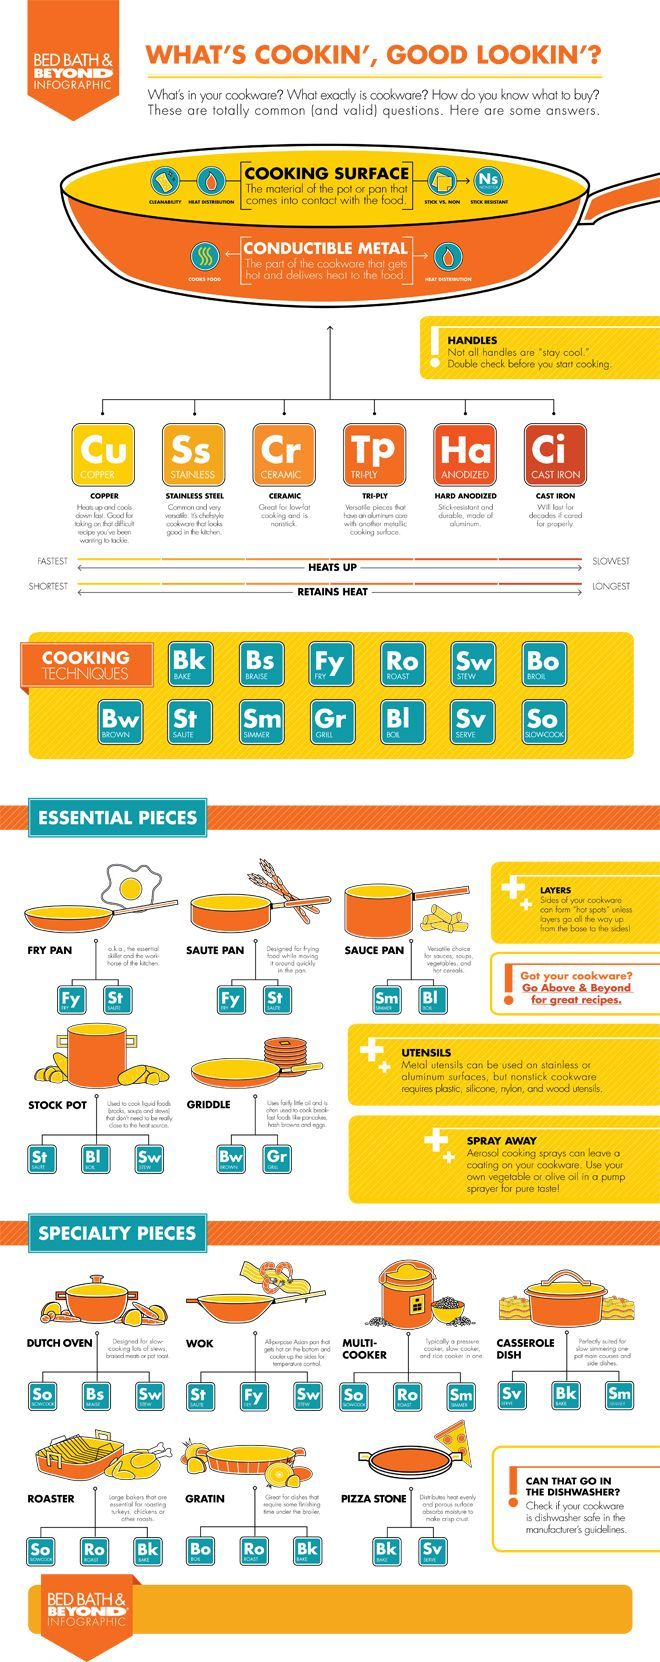 107 best useful kitchen infographics images on pinterest cooking cookware basics 101 what is in your cookware what exactly is cookware check out this infographic to find the answers to these questions biocorpaavc Images